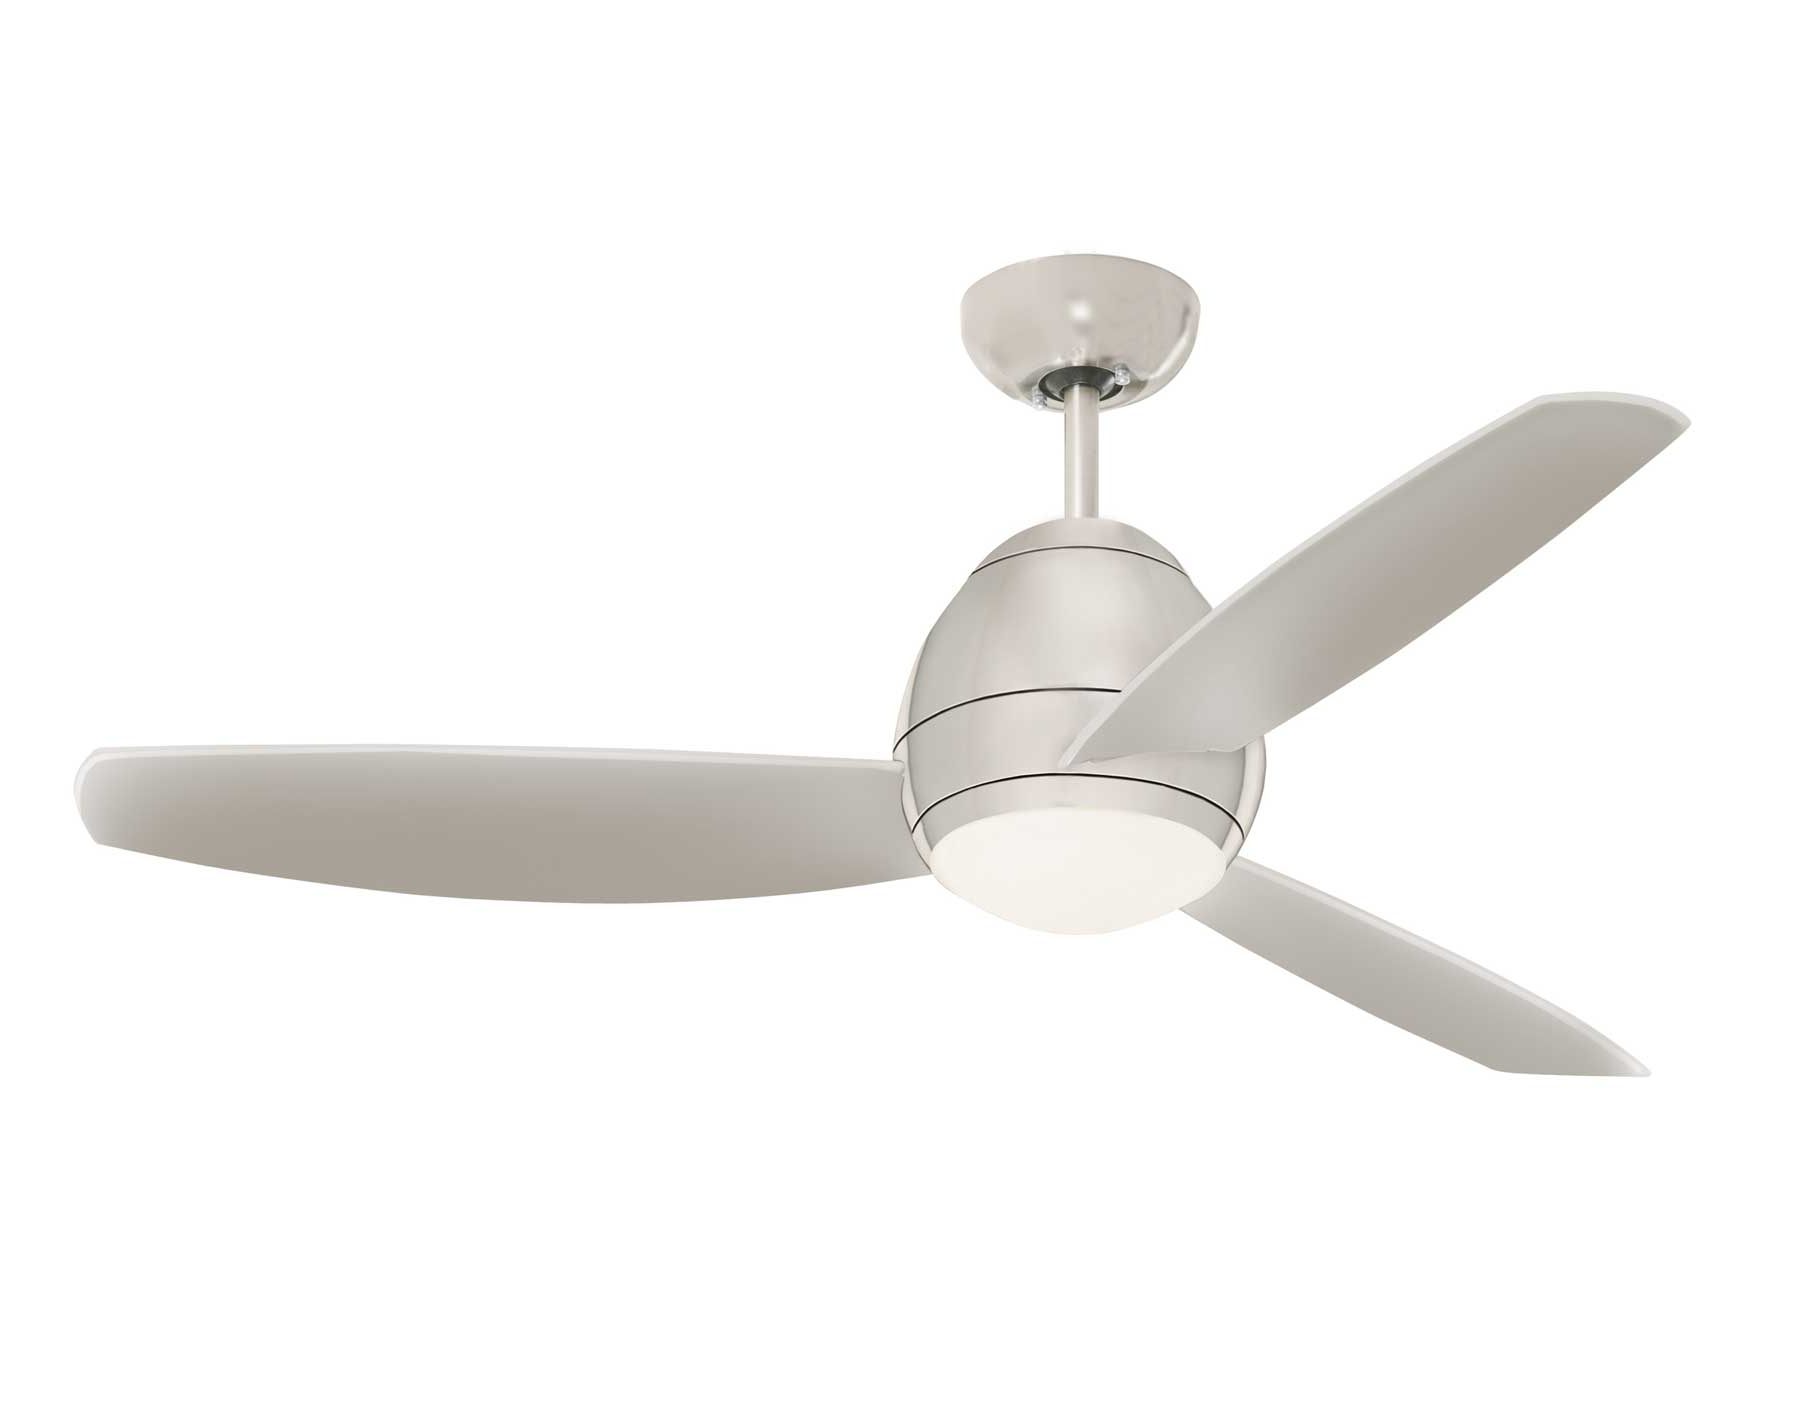 36 Inch Outdoor Ceiling Fans With Light Flush Mount Pertaining To Well Known Ceiling Fan: Remarkable 36 Outdoor Ceiling Fan For Home 36 Inch Fans (Gallery 10 of 20)